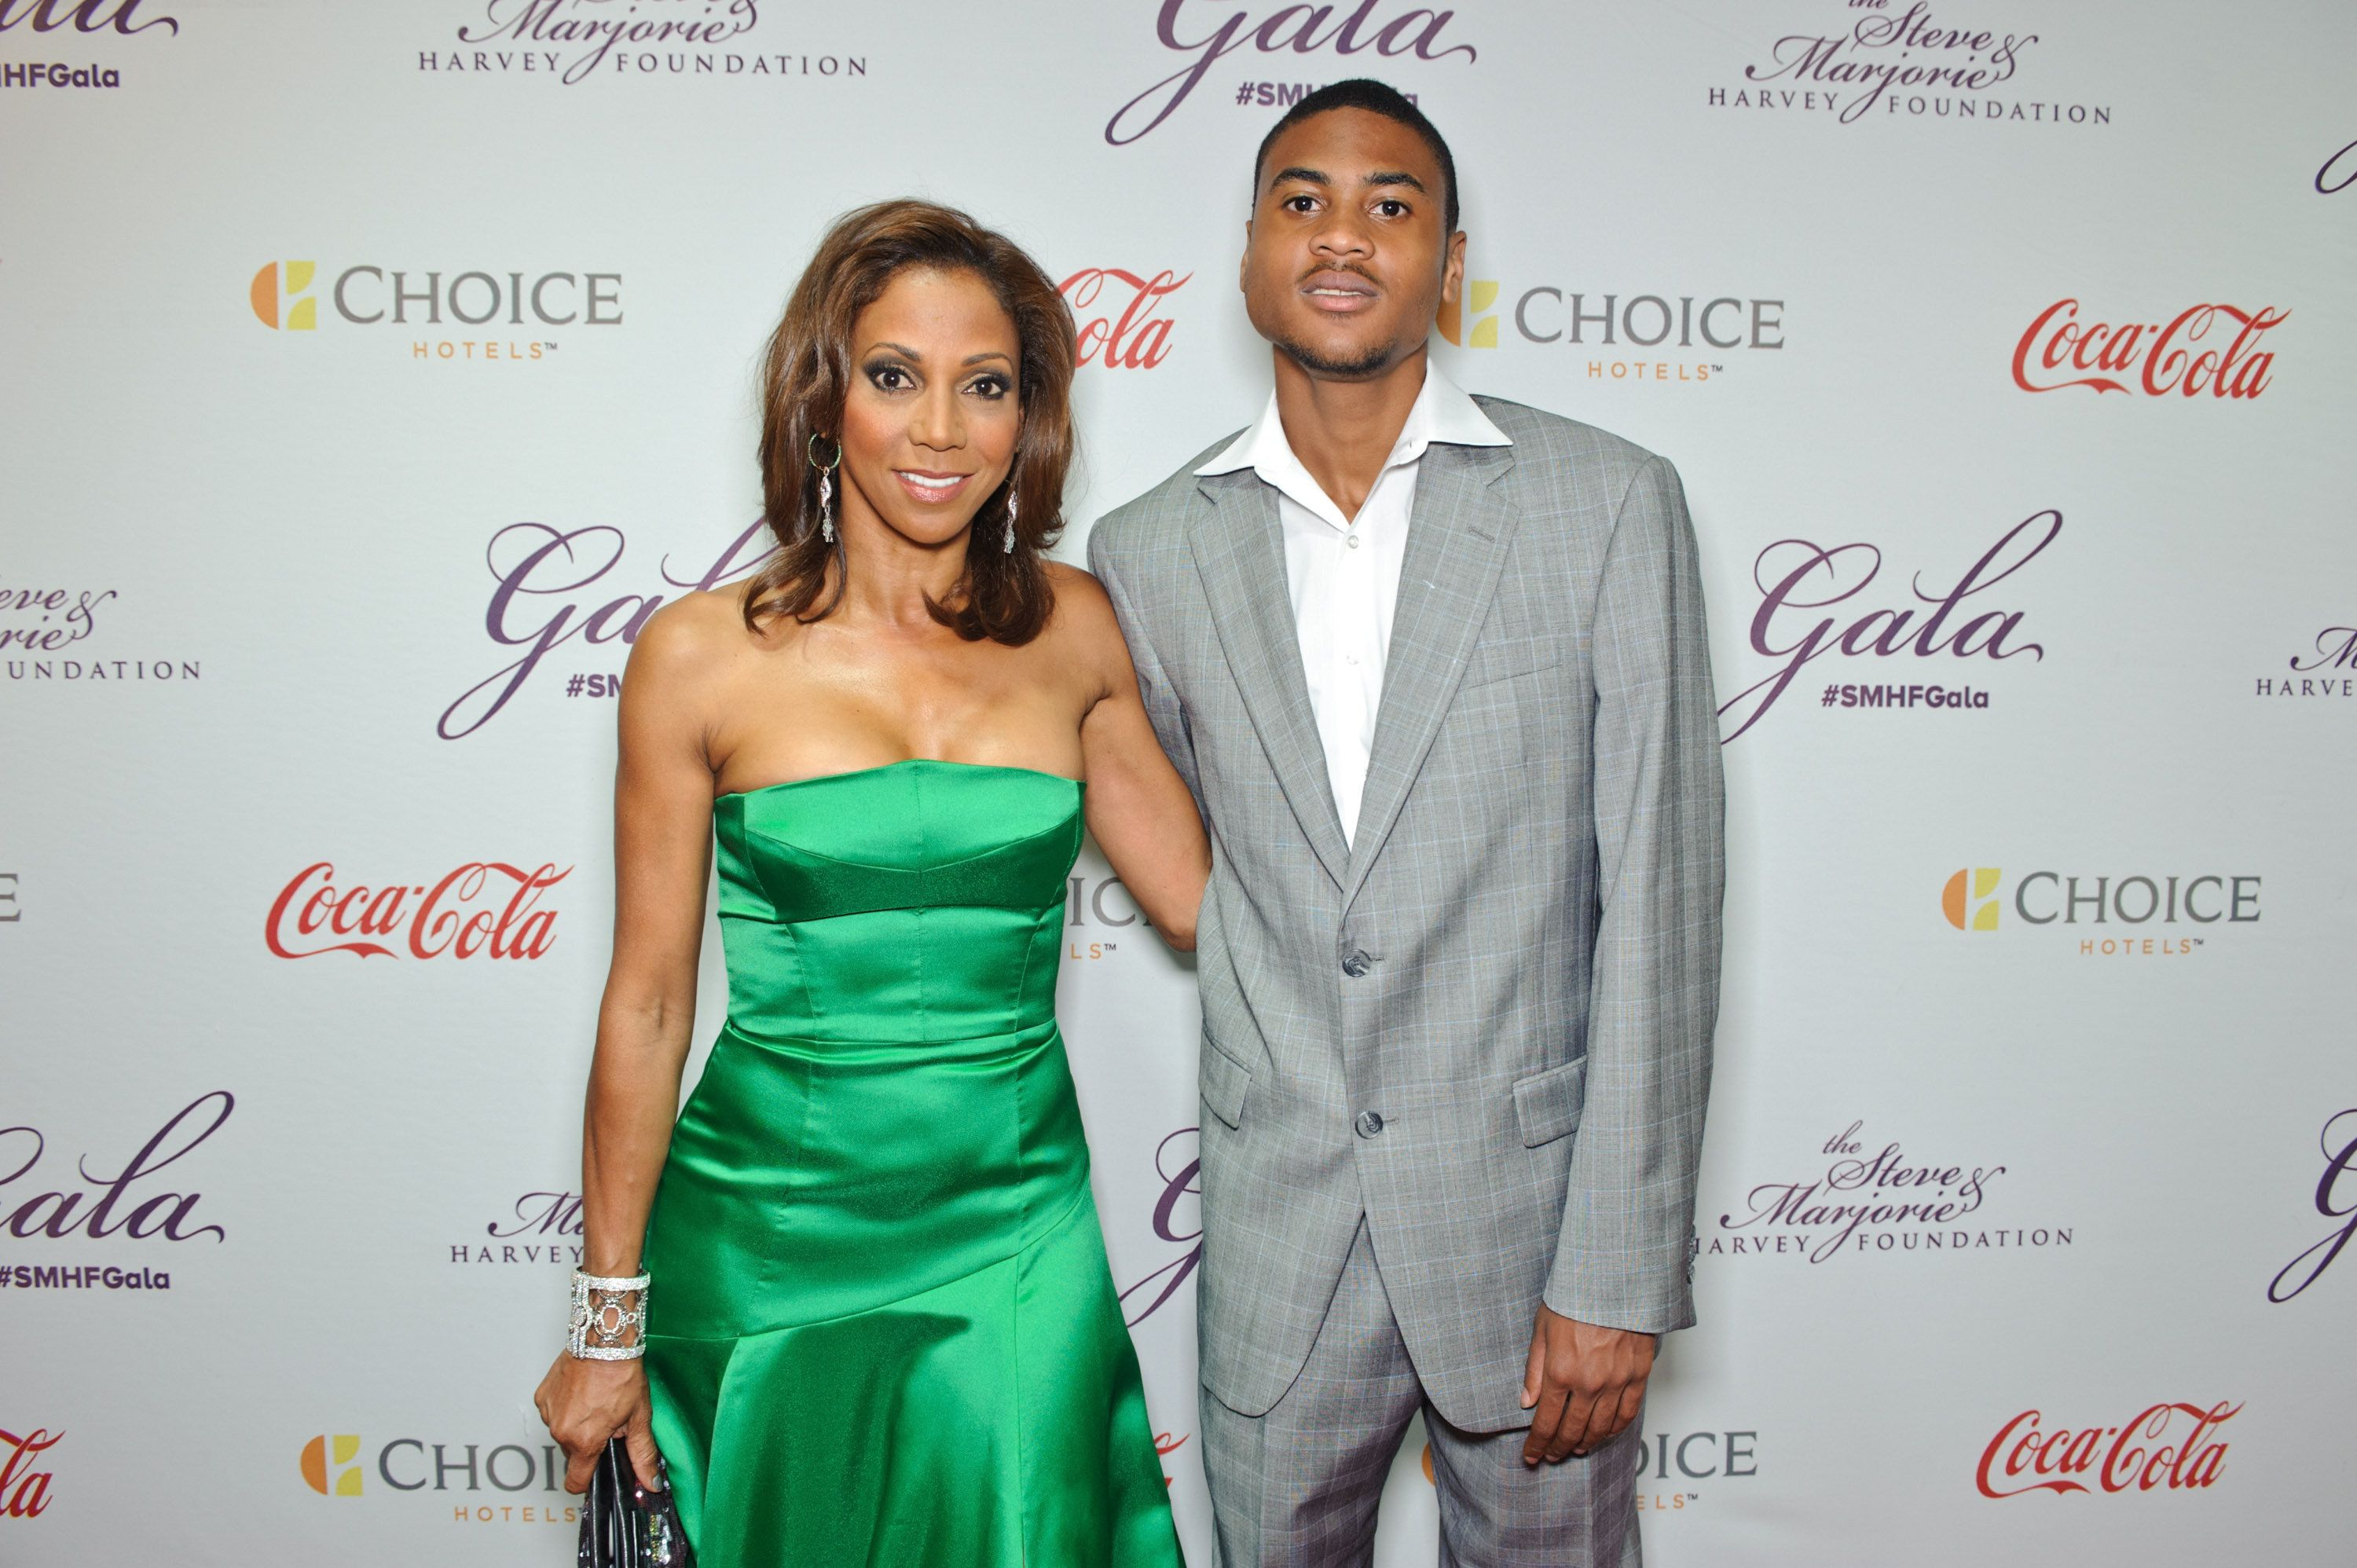 CHICAGO, IL - MAY 16:  Holly Robinson Peete and son R.J. attend the Steve & Marjorie Harvey Foundation Gala on May 16, 2015 in Chicago, Illinois.  (Photo by Timothy Hiatt/Getty Images for Steve & Marjorie Harvey Foundation)